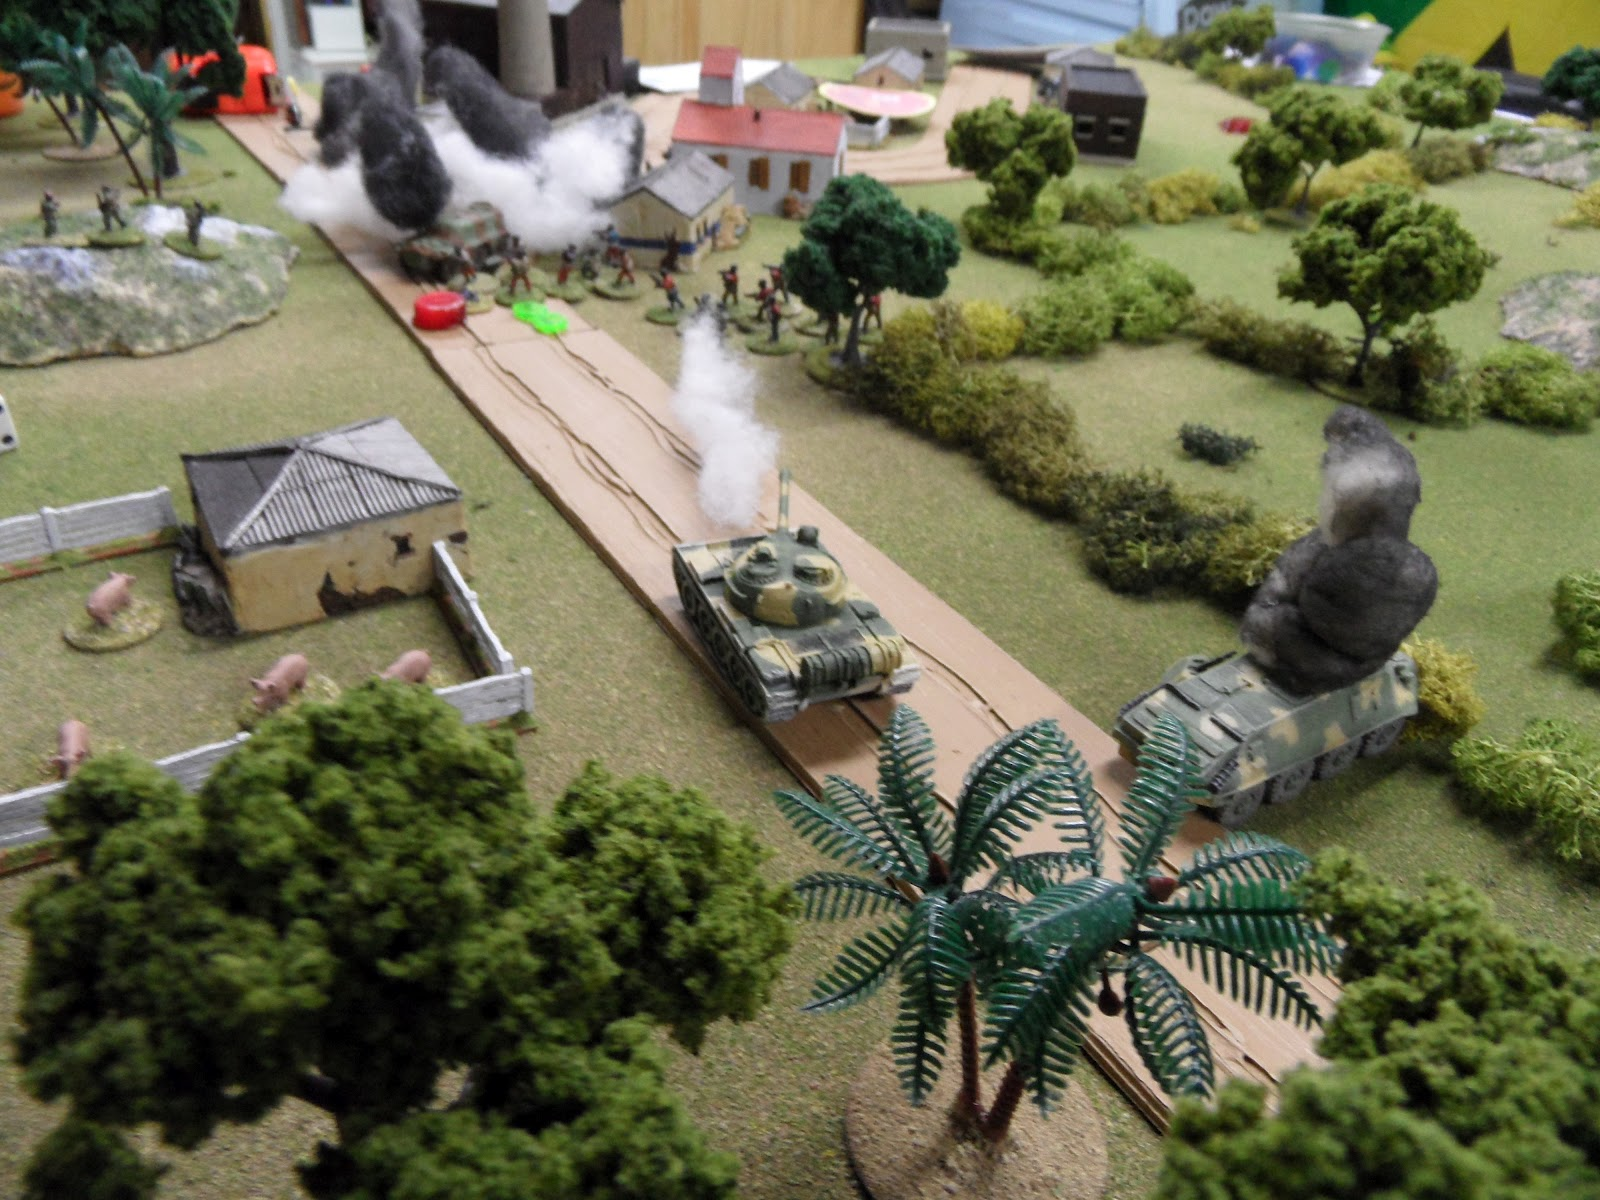 The rebels vainly fire an RPG at the T-55, and are subjected to return fire for their efforts.